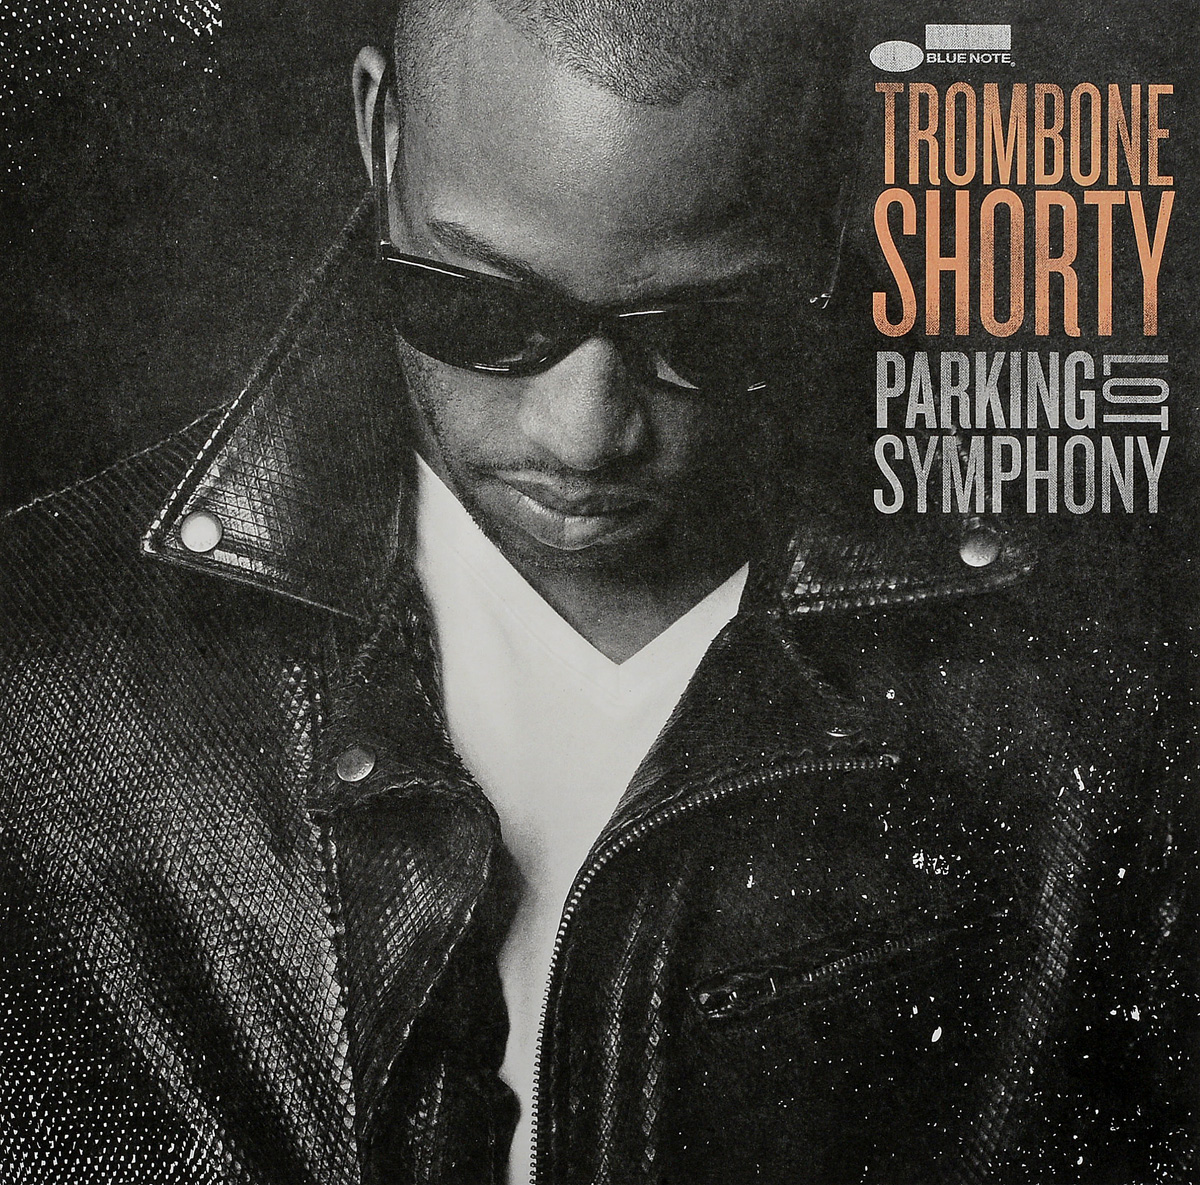 Тромбоун Шорти Trombone Shorty. Parking Lot Symphony (LP) тромбоун шорти trombone shorty parking lot symphony lp